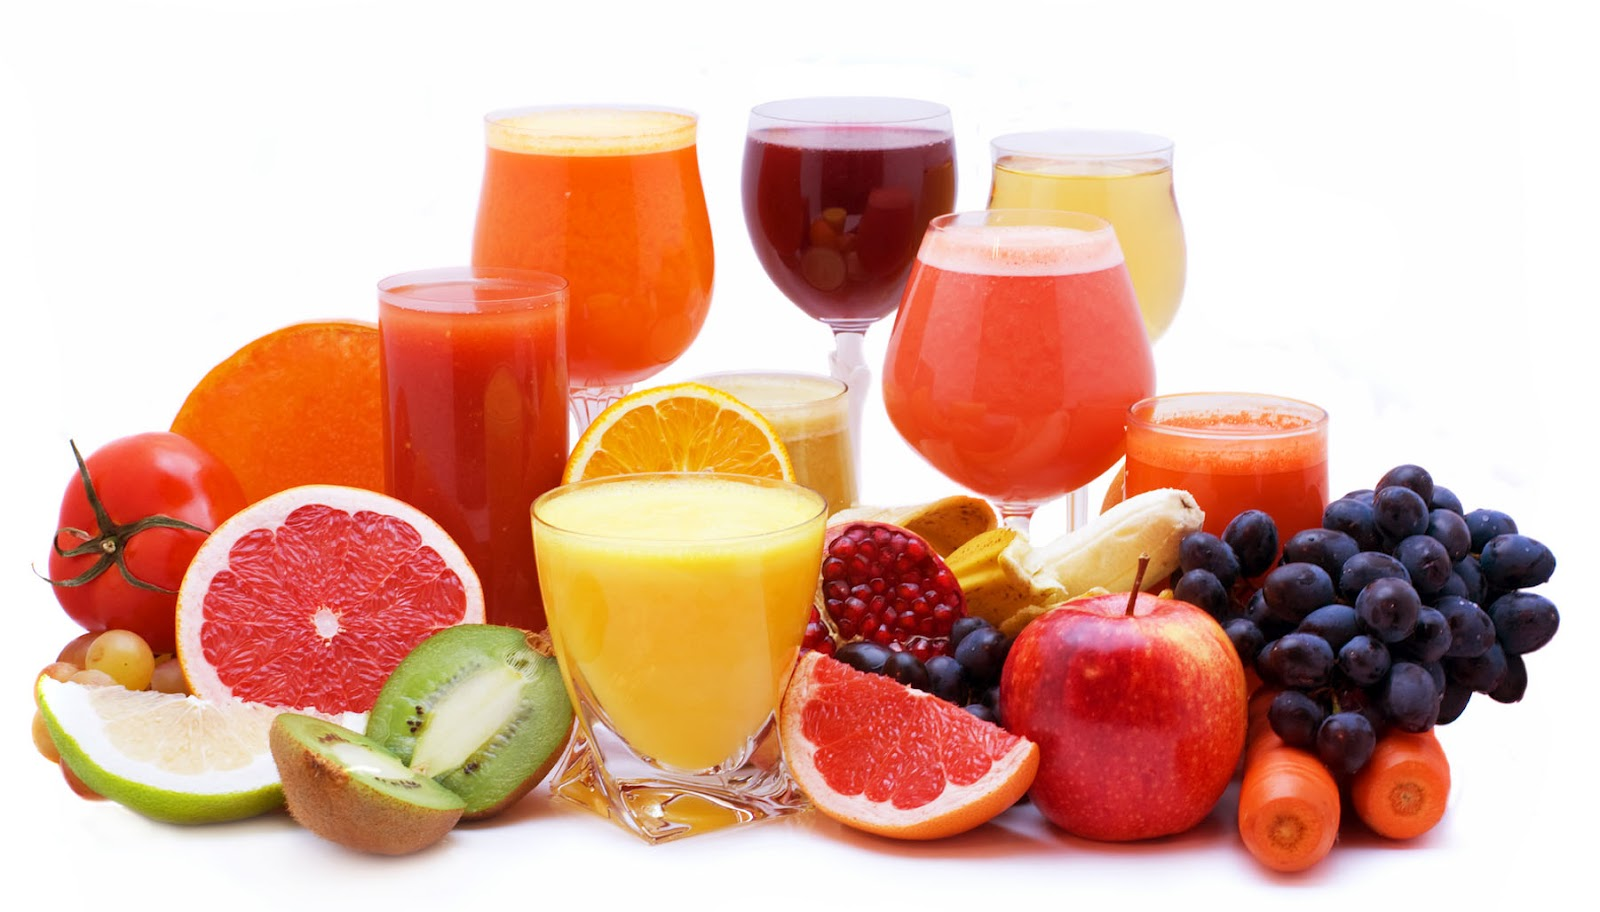 fruit juice The vast majority of fruit juices will be banned from advertising aimed at children in a bid to cut down on juvenile obesity, the government has proposed.